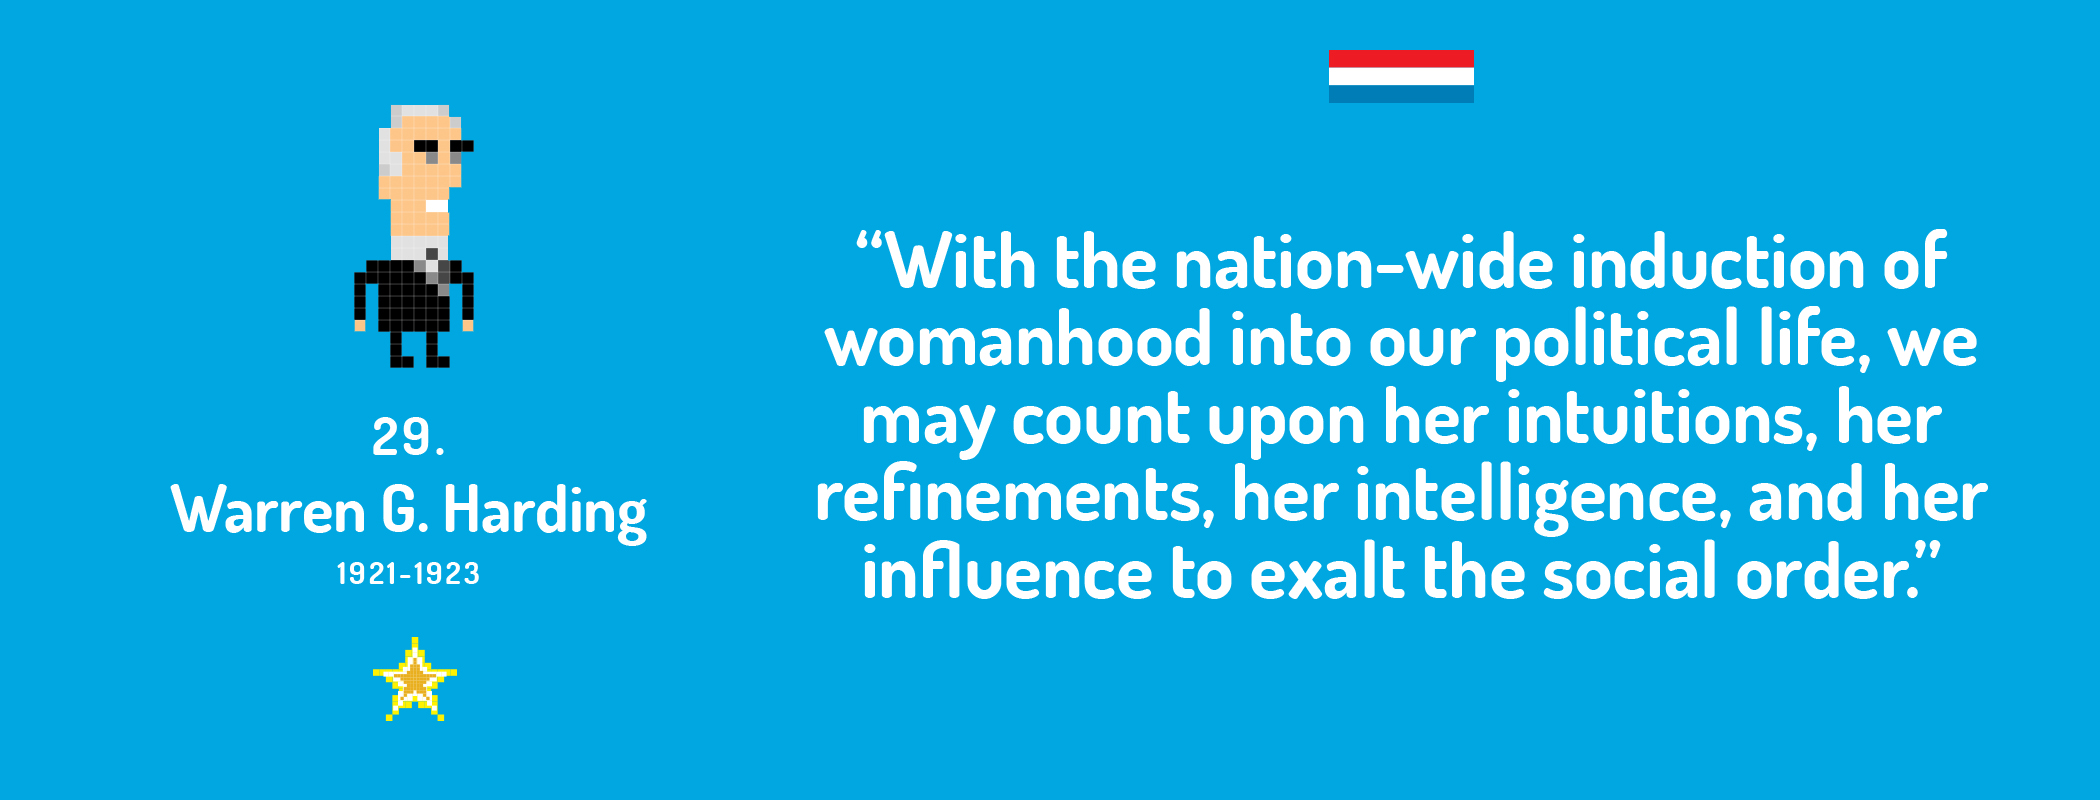 With the nation-wide induction of womanhood into our political life, we may count upon her intuitions, her refinements, her intelligence, and her influence to exalt the social order.